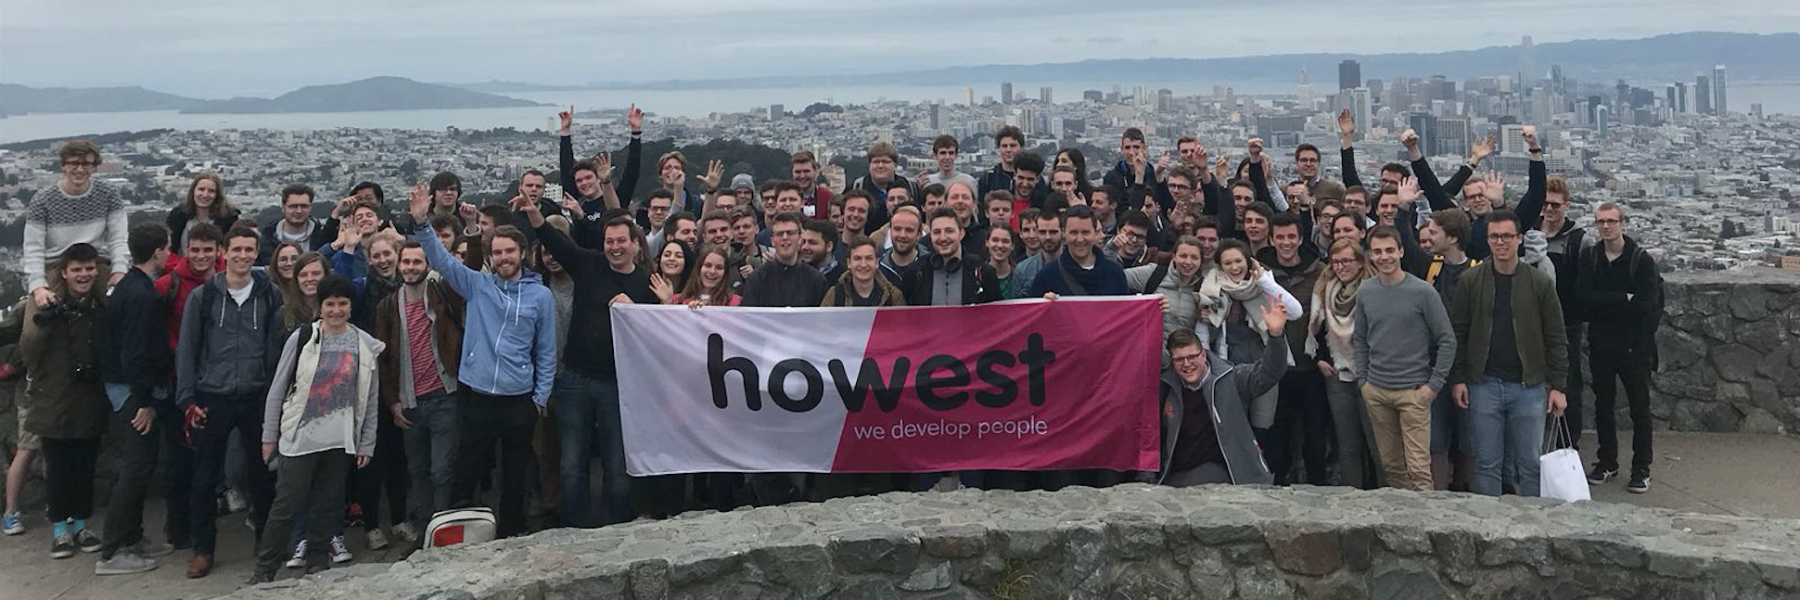 Howest Goes USA